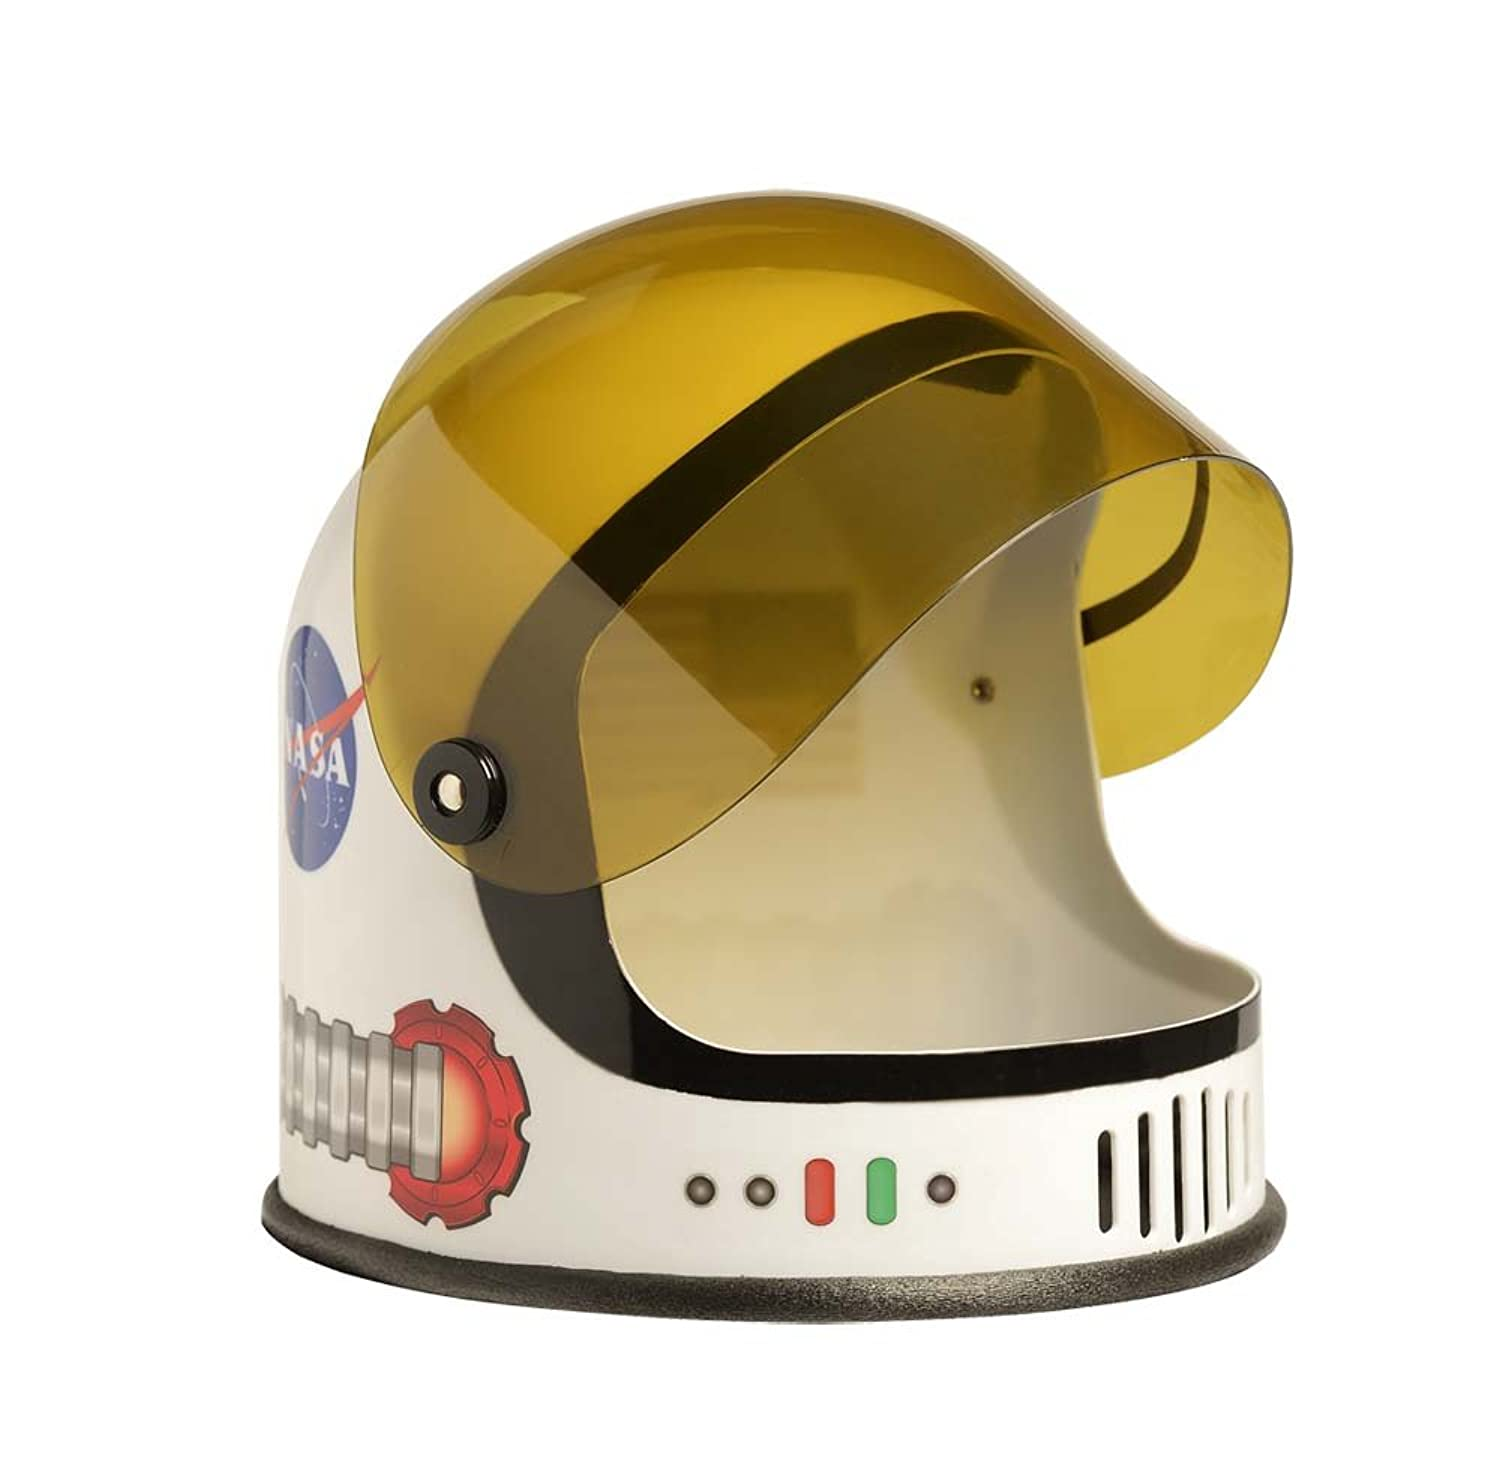 Aeromax Youth Astronaut Helmet with movable visor by Aeromax Aeromax Amazon Bekleidung